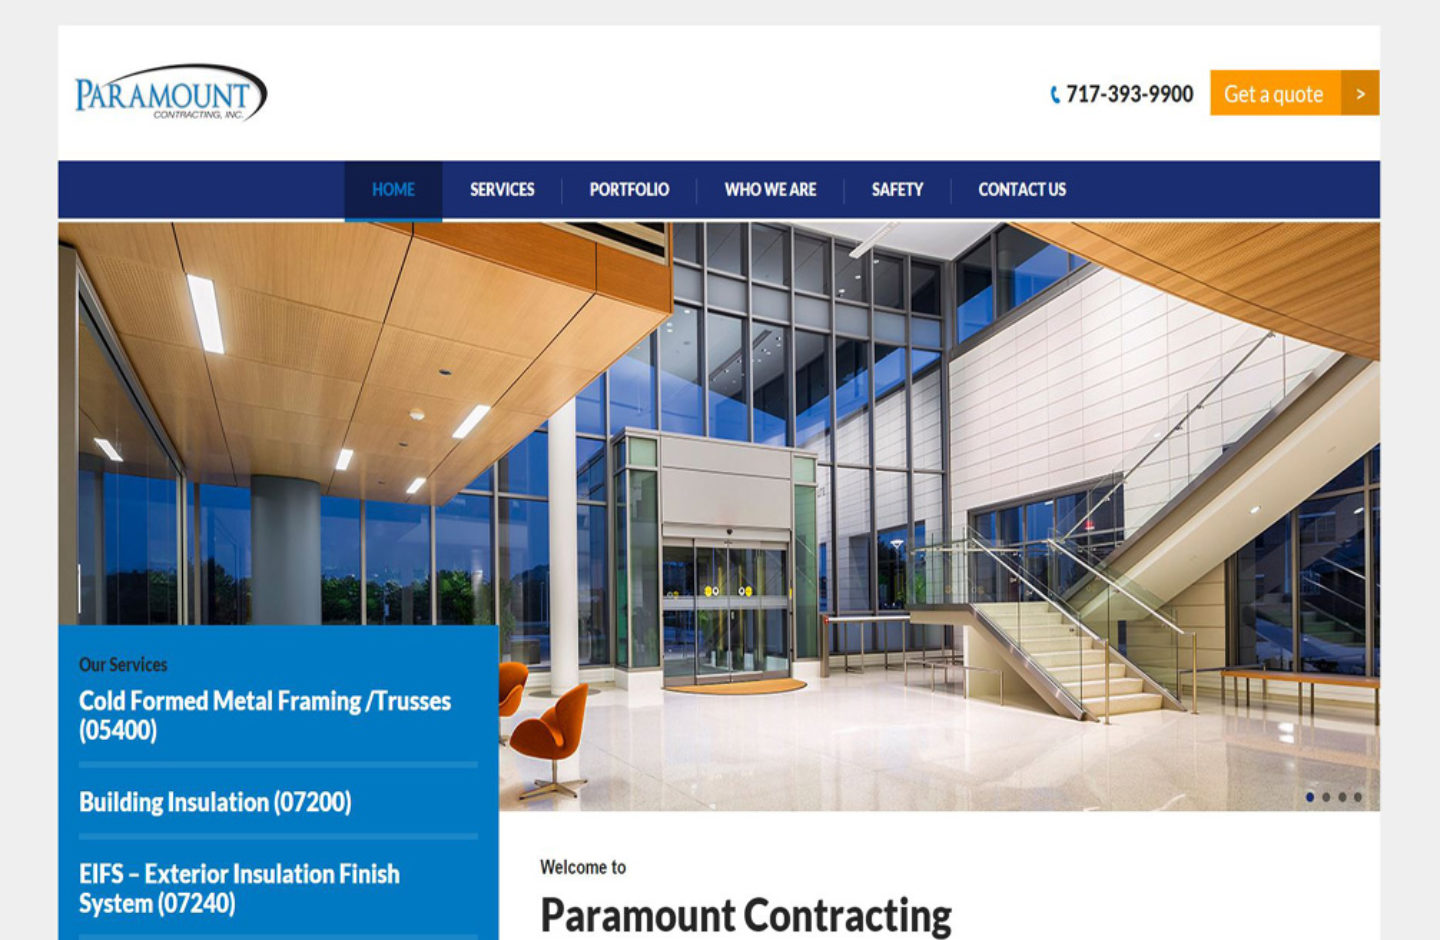 Paramount Contracting